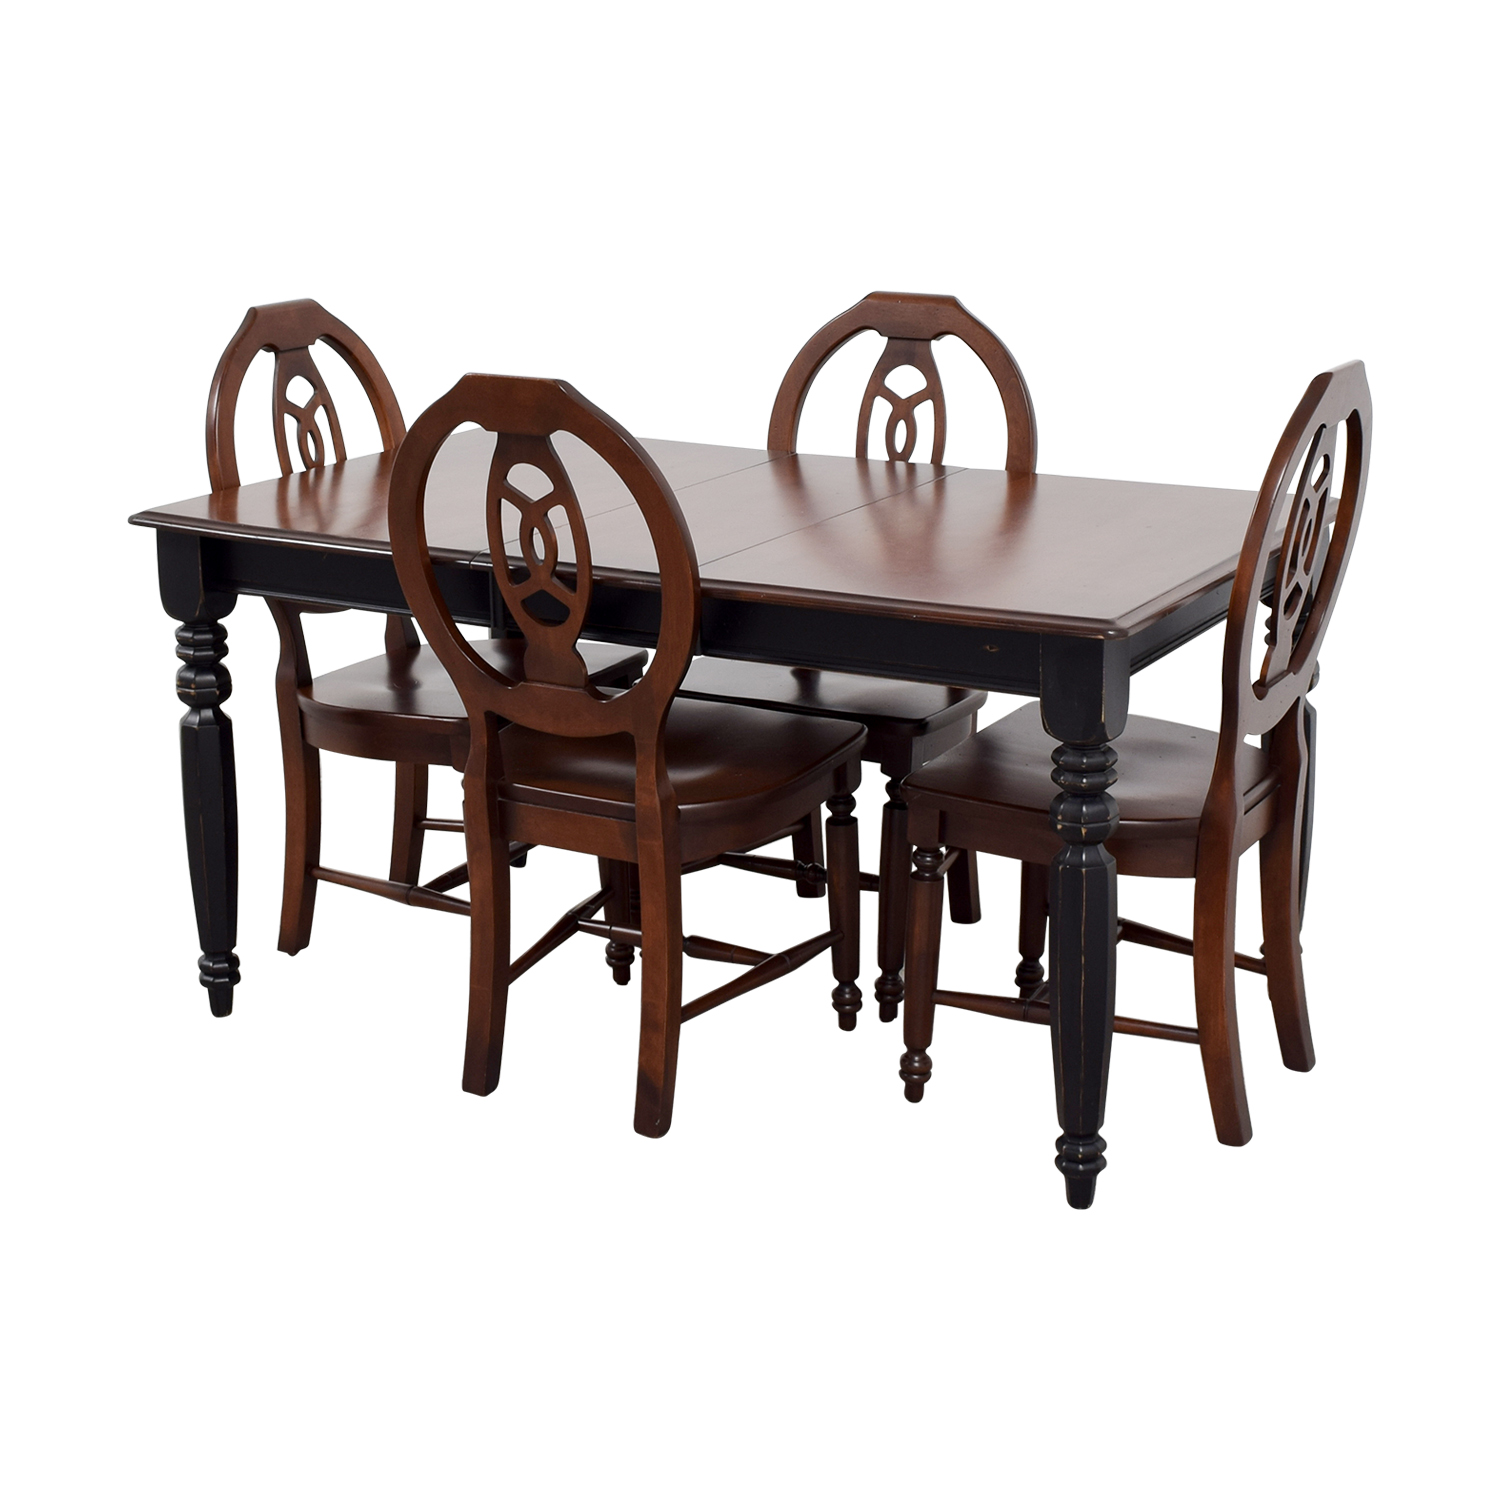 Second Hand Wood Sala Set 90 Off Classic Wooden Extendable Dining Set Tables